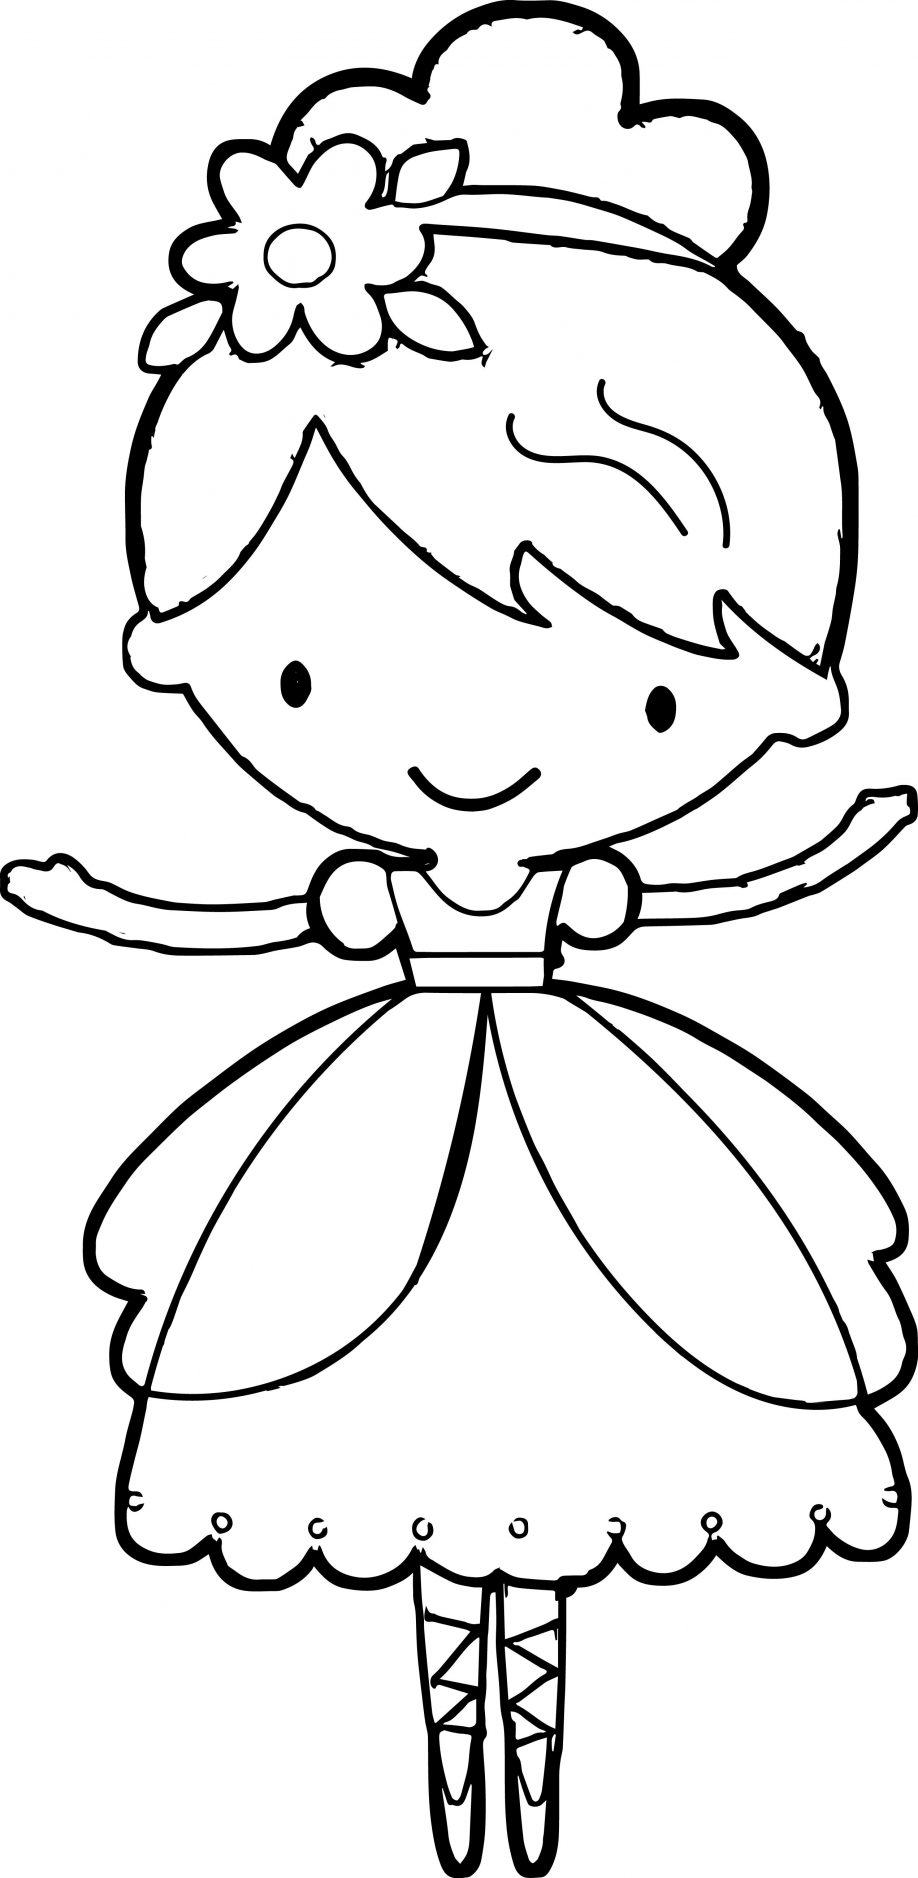 918x1878 Printable Ballerina Coloring Pages For Girls